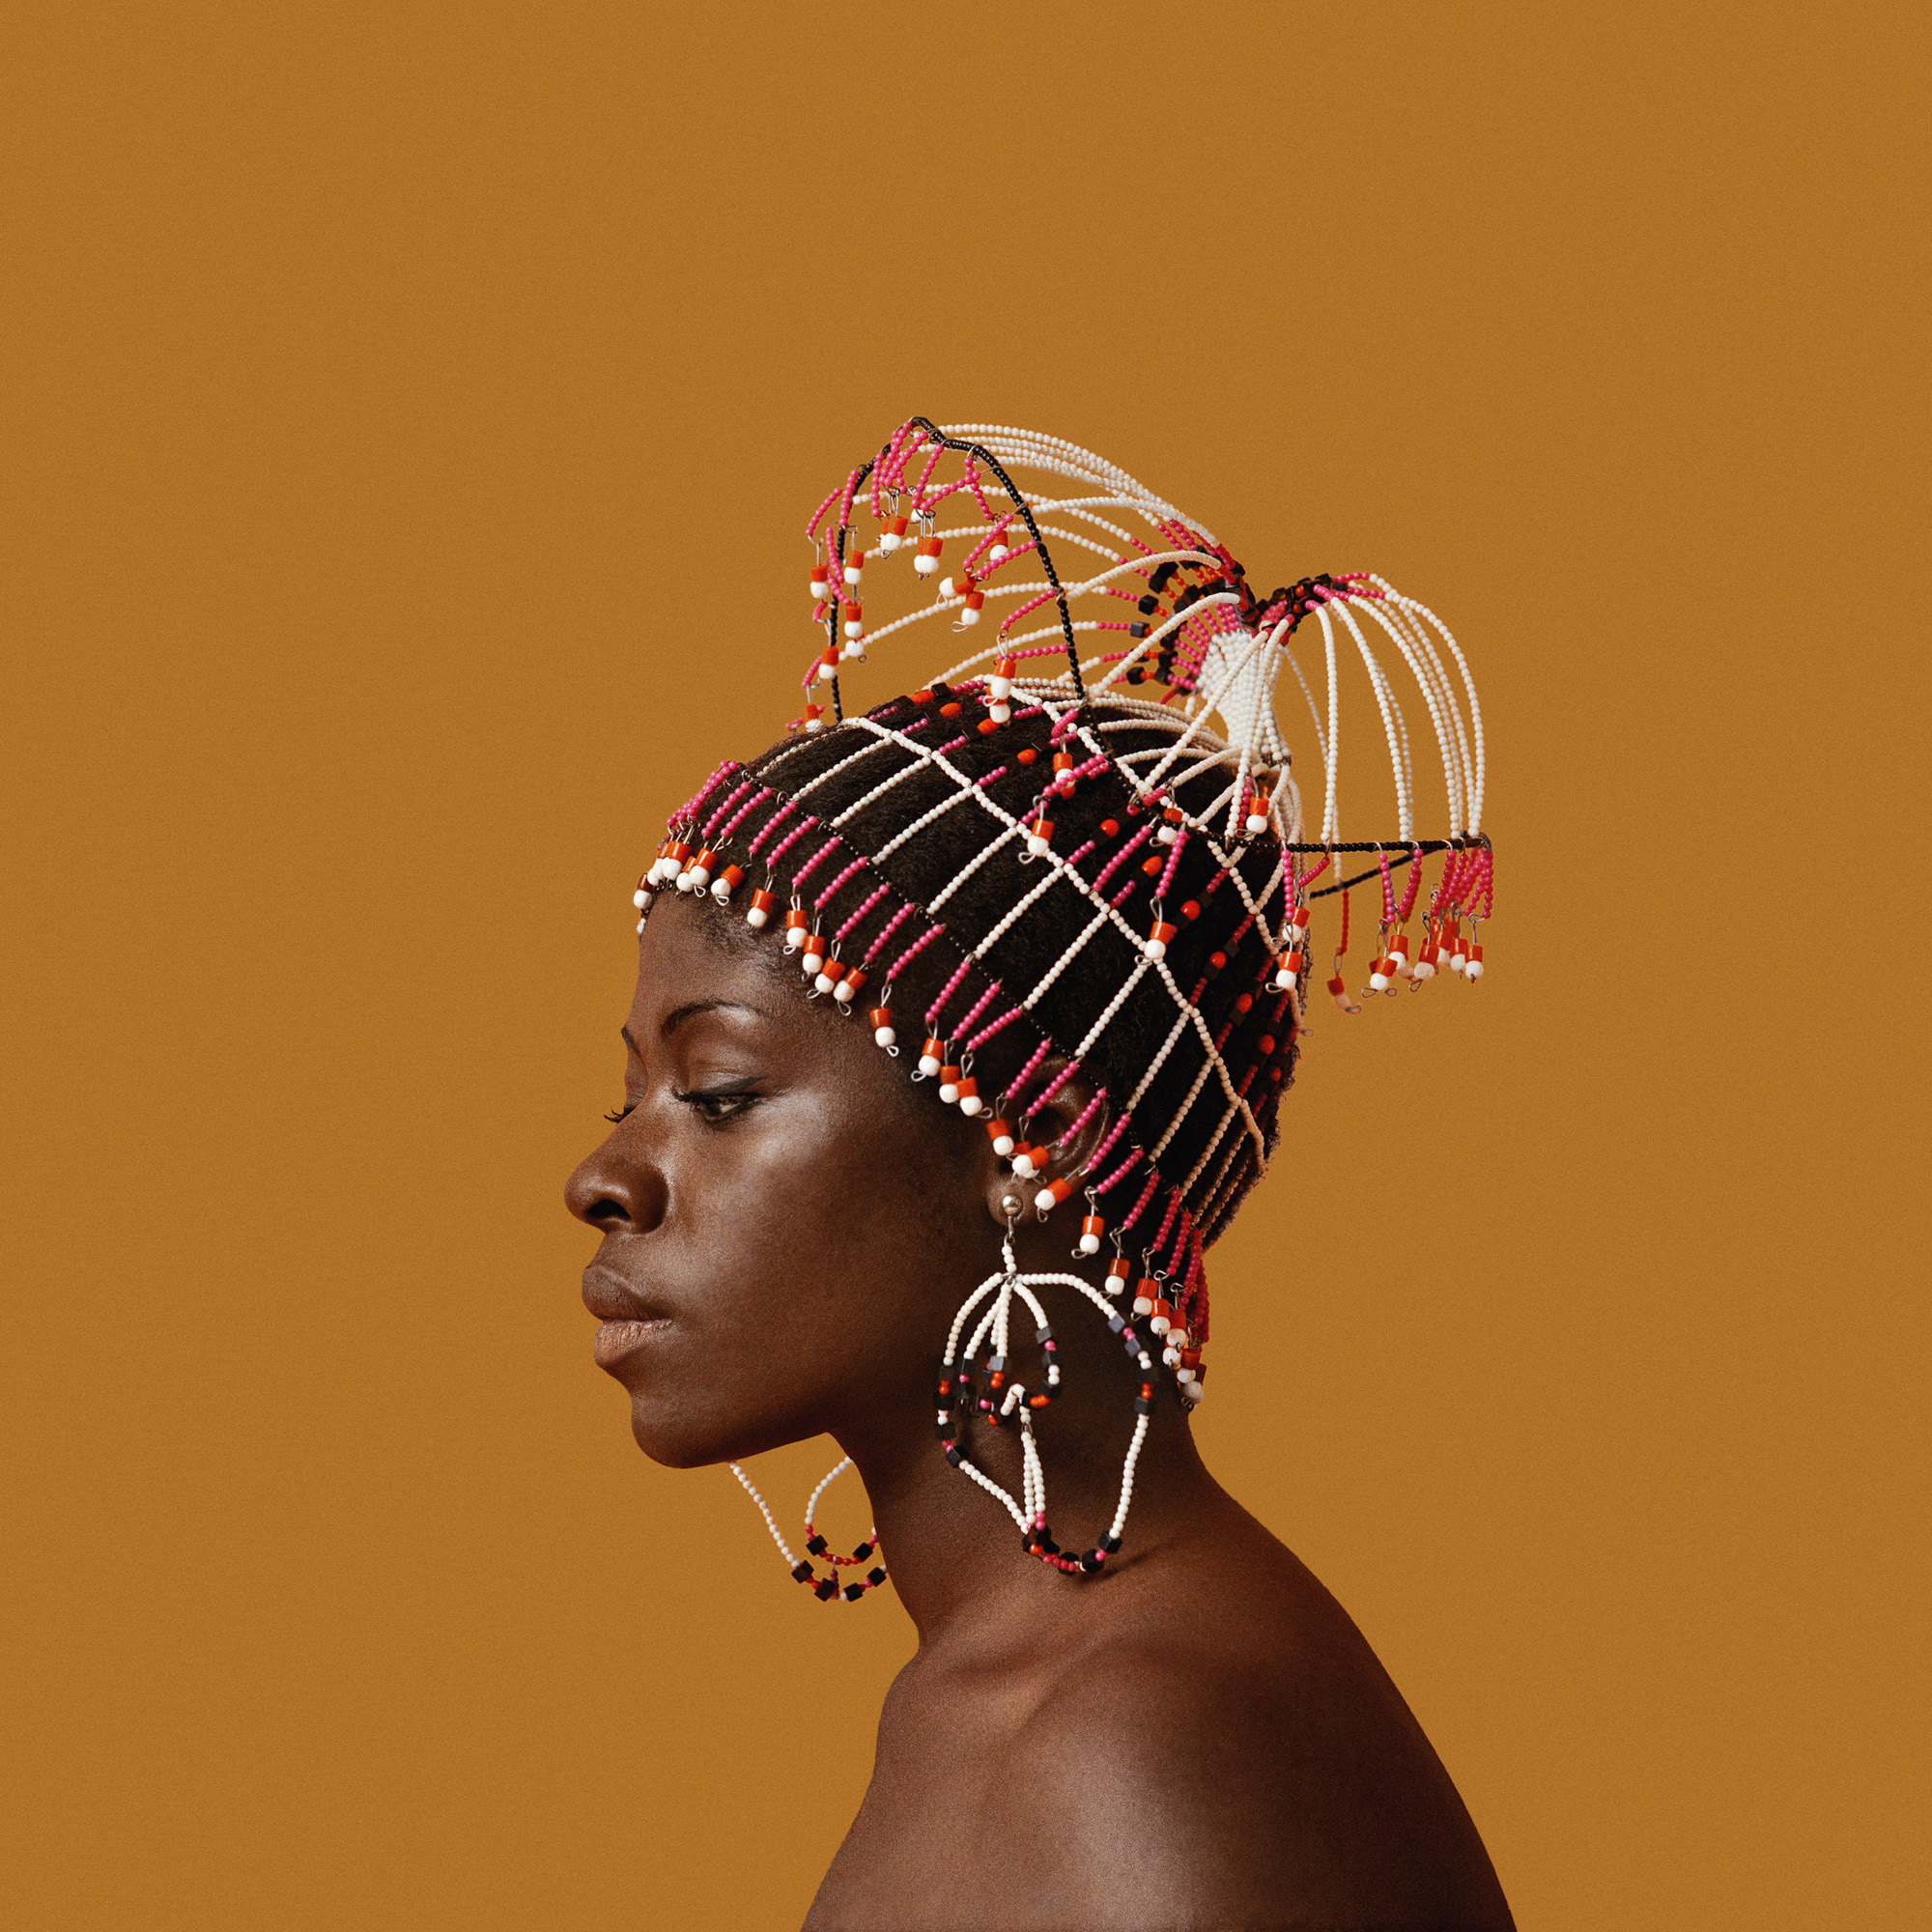 Kwame Brathwaite, Sikolo Brathwaite wearing a headpiece designed by Carolee Prince, African Jazz-Art Society & Studios (AJASS), Harlem, circa 1968 (detail); from Kwame Brathwaite: Black Is Beautiful (Aperture, 2019), Courtesy the artist and Philip Martin Gallery, Los Angeles